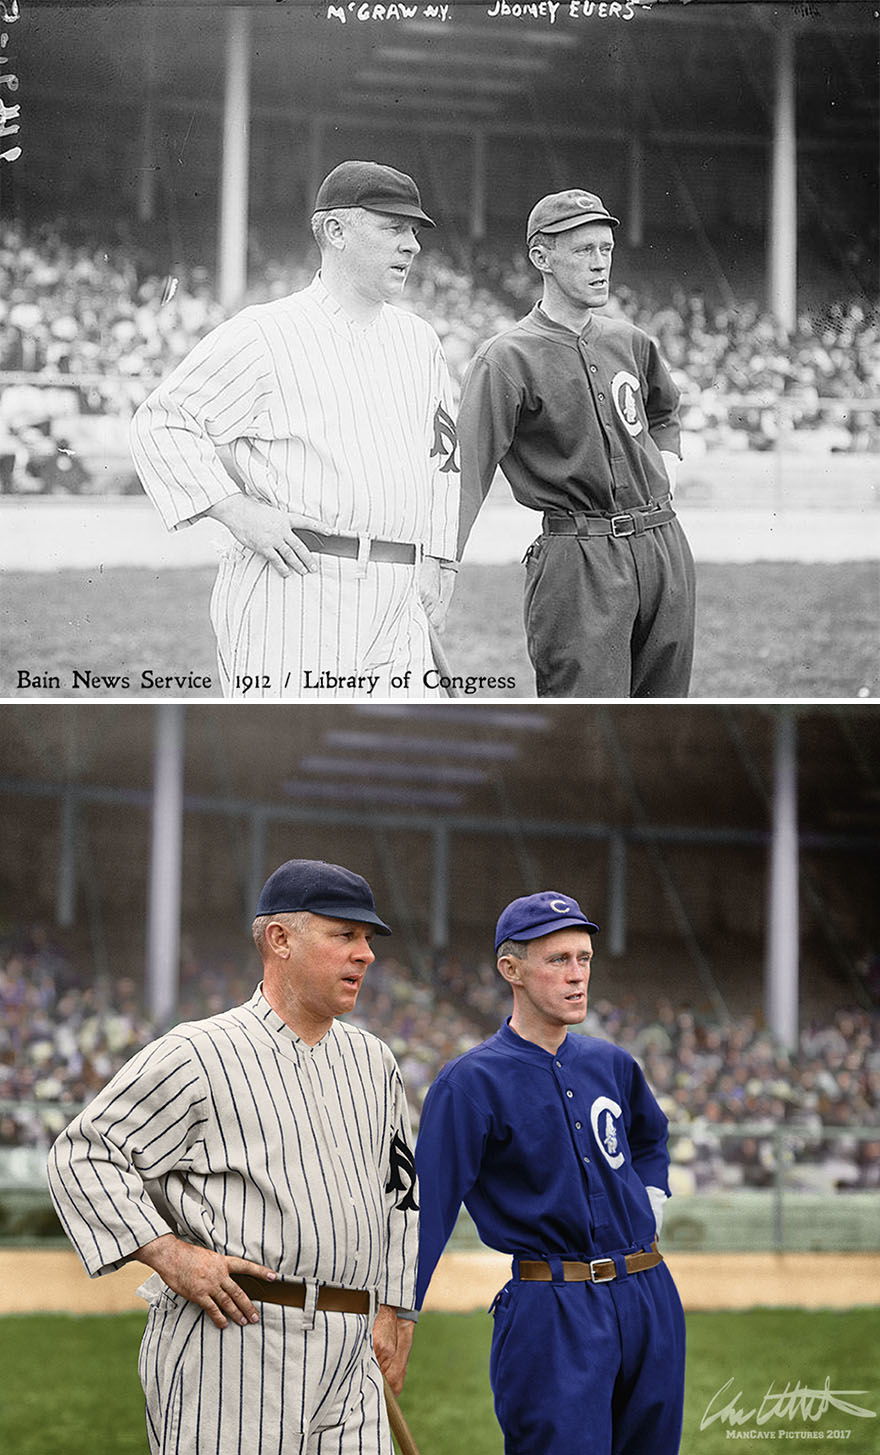 New York Giants Manager John Mcgraw With Chicago Cubs Star Johnny Evers, 1912